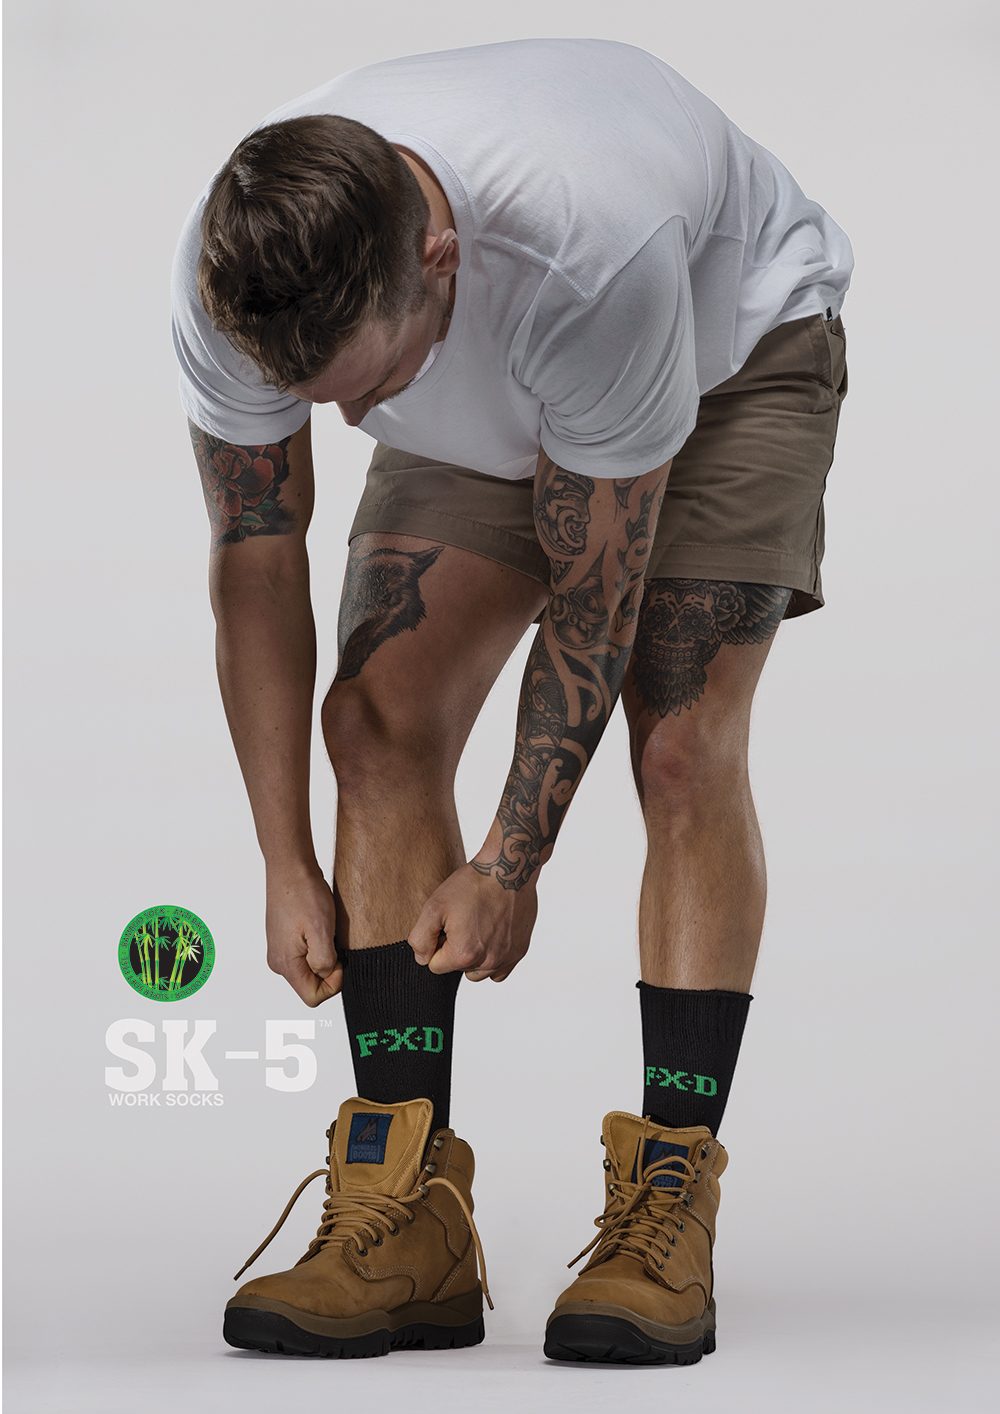 FXD SK-5 Bamboo Work Socks   Features:  - FX71439001 - Natural Bamboo - Anti Odour - Anti Bacterial - Super Soft Feel - Extra Thick Boot Sock